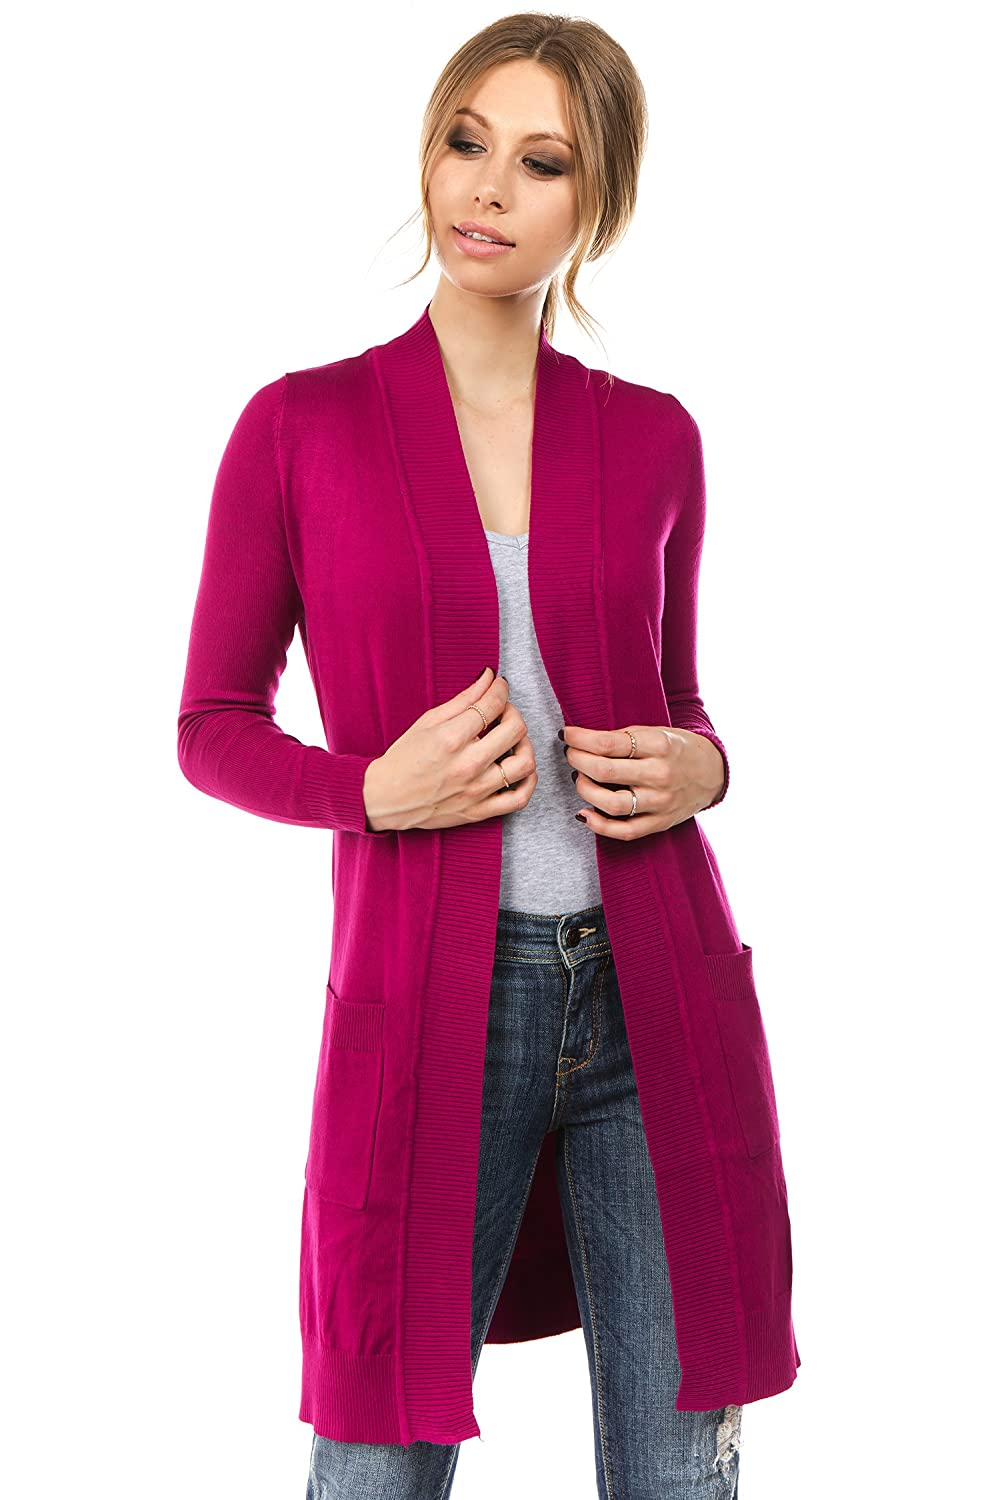 Magenta CIELO Women's Long Sleeve Sweater Duster Cardigan